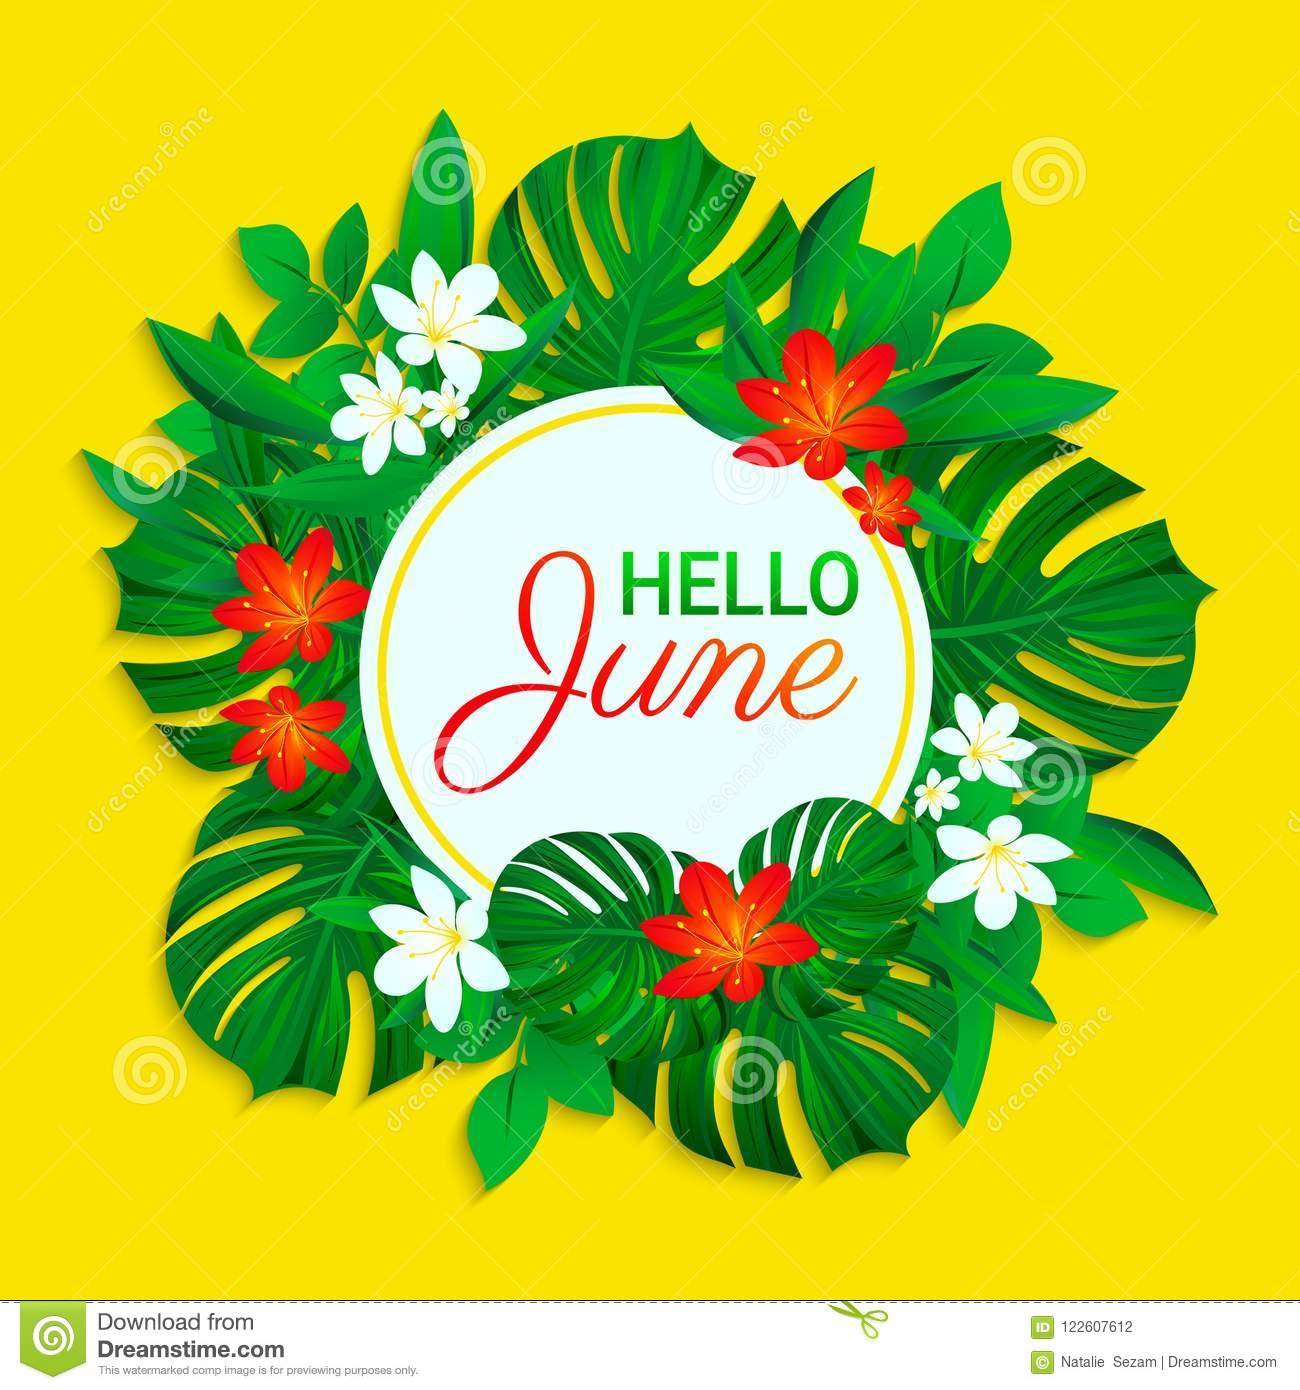 Hello June Card Summer Tropic Design Exotic Leaves Flowers Simple Text